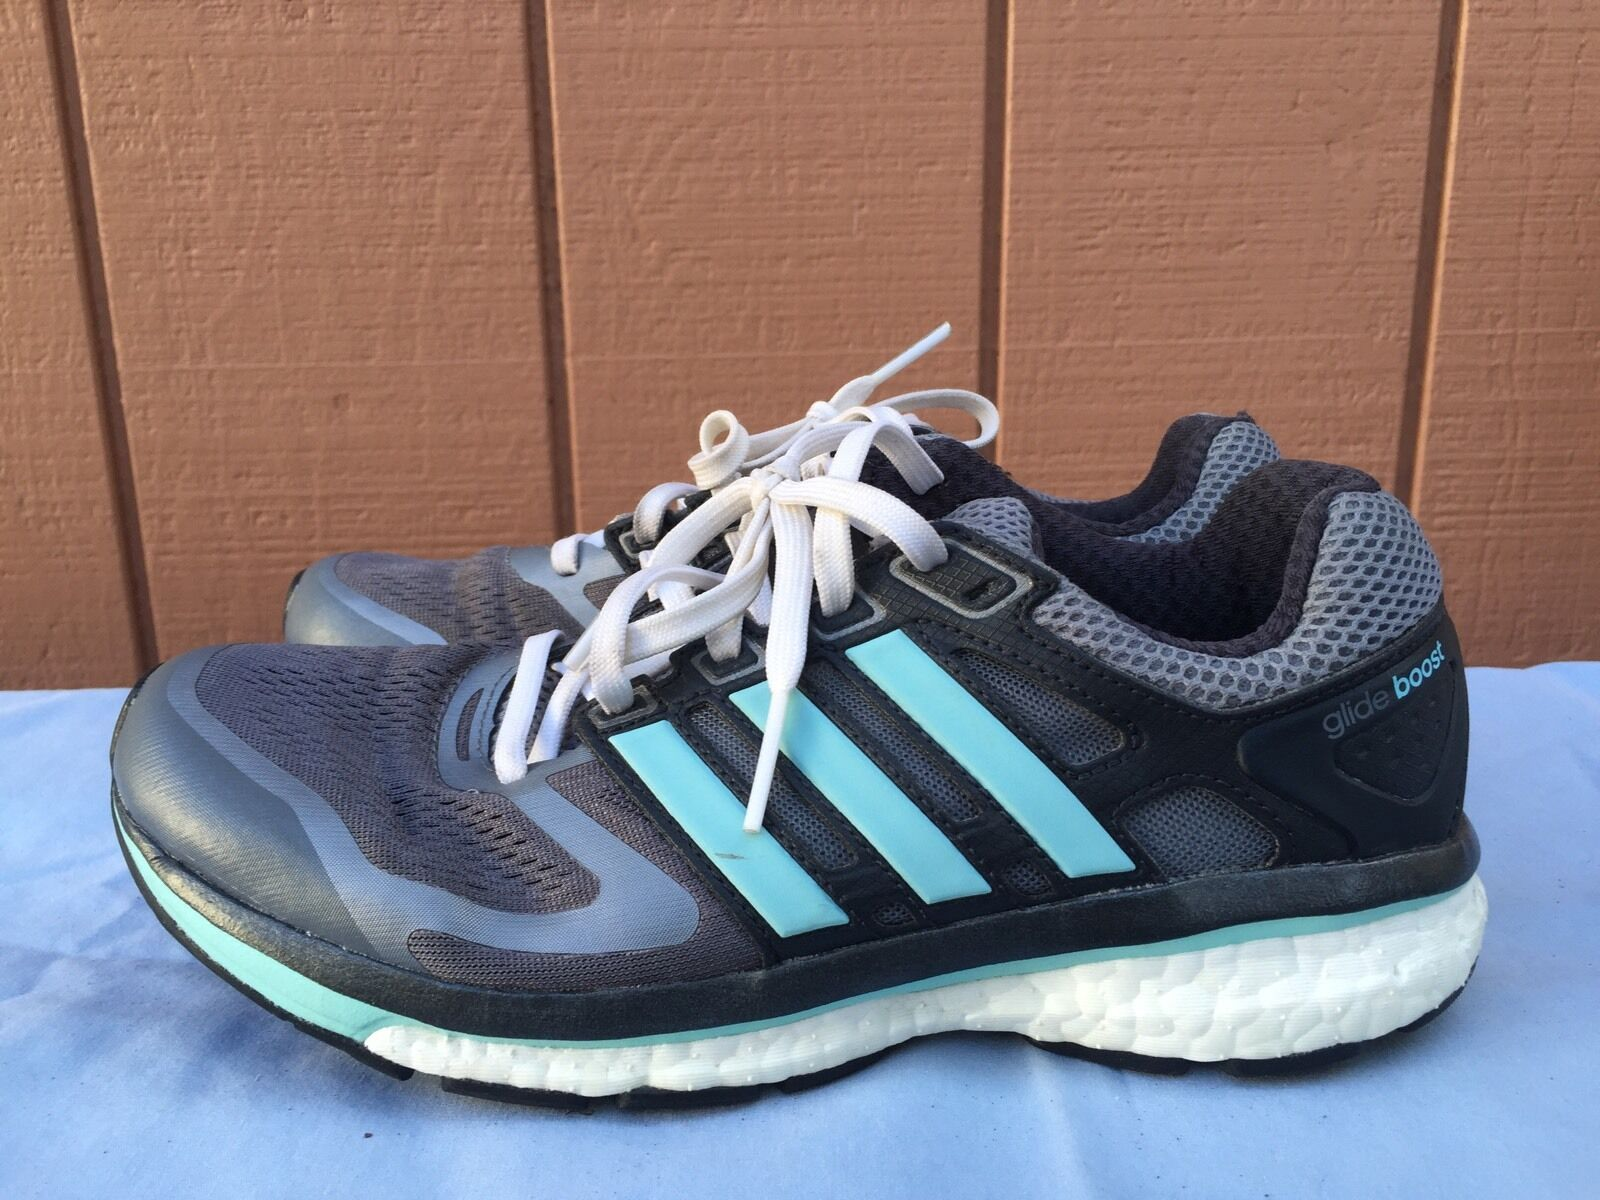 Adidas SuperNova Boost Glide US 6 Gray Running Shoes US Glide Sz W 8.5 M 7 /3 11aba7